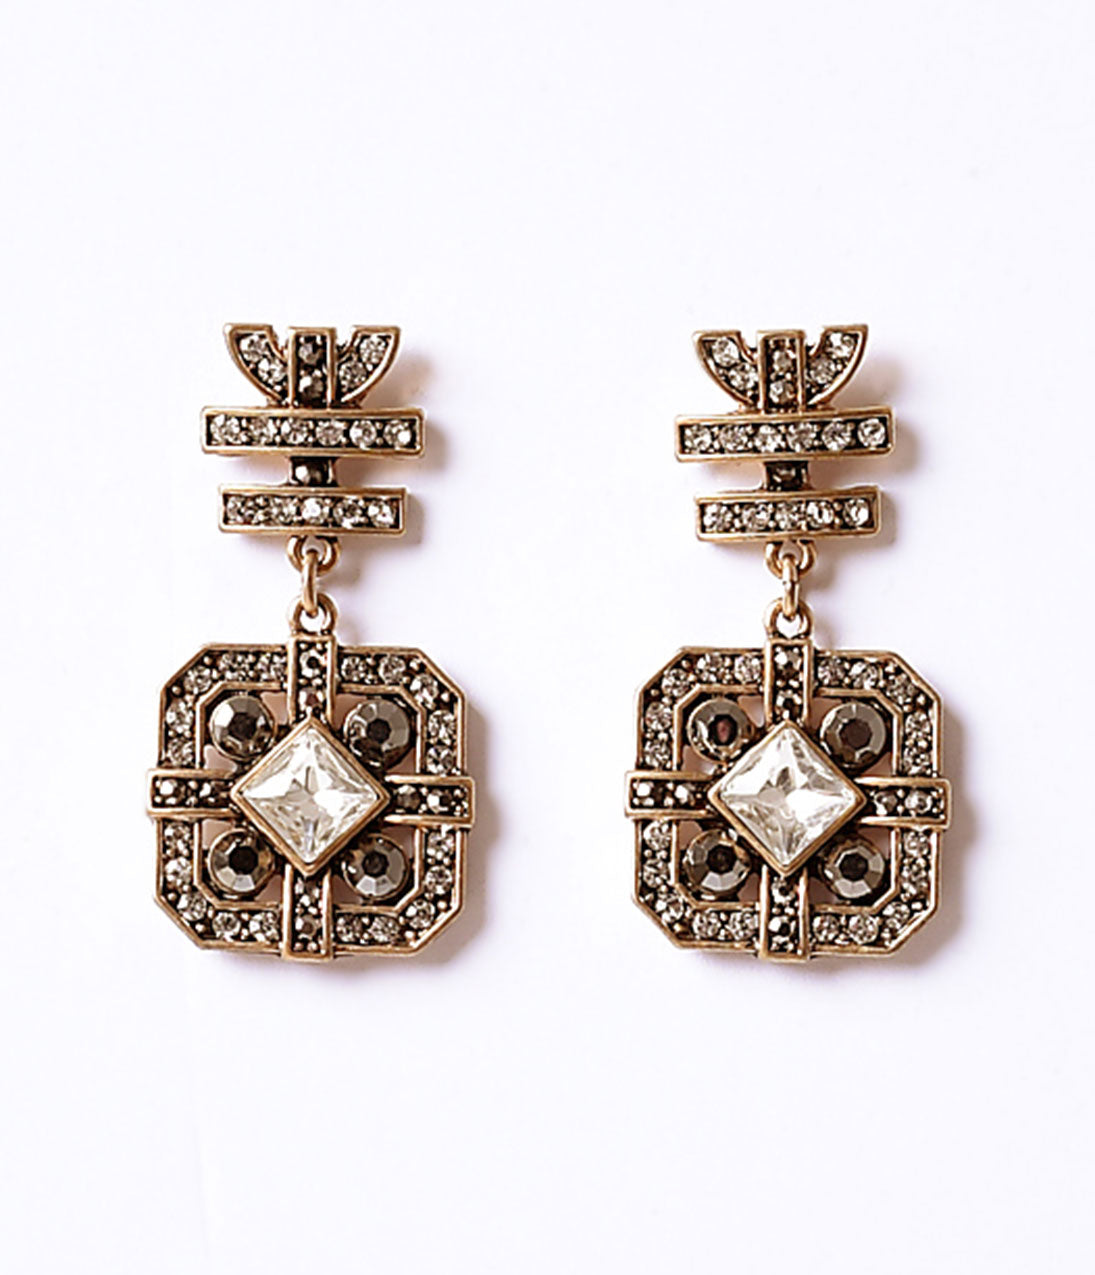 1920s Gatsby Jewelry- Flapper Earrings, Necklaces, Bracelets Gold  Multicolor Crystal Deco Drop Post Earrings $22.00 AT vintagedancer.com